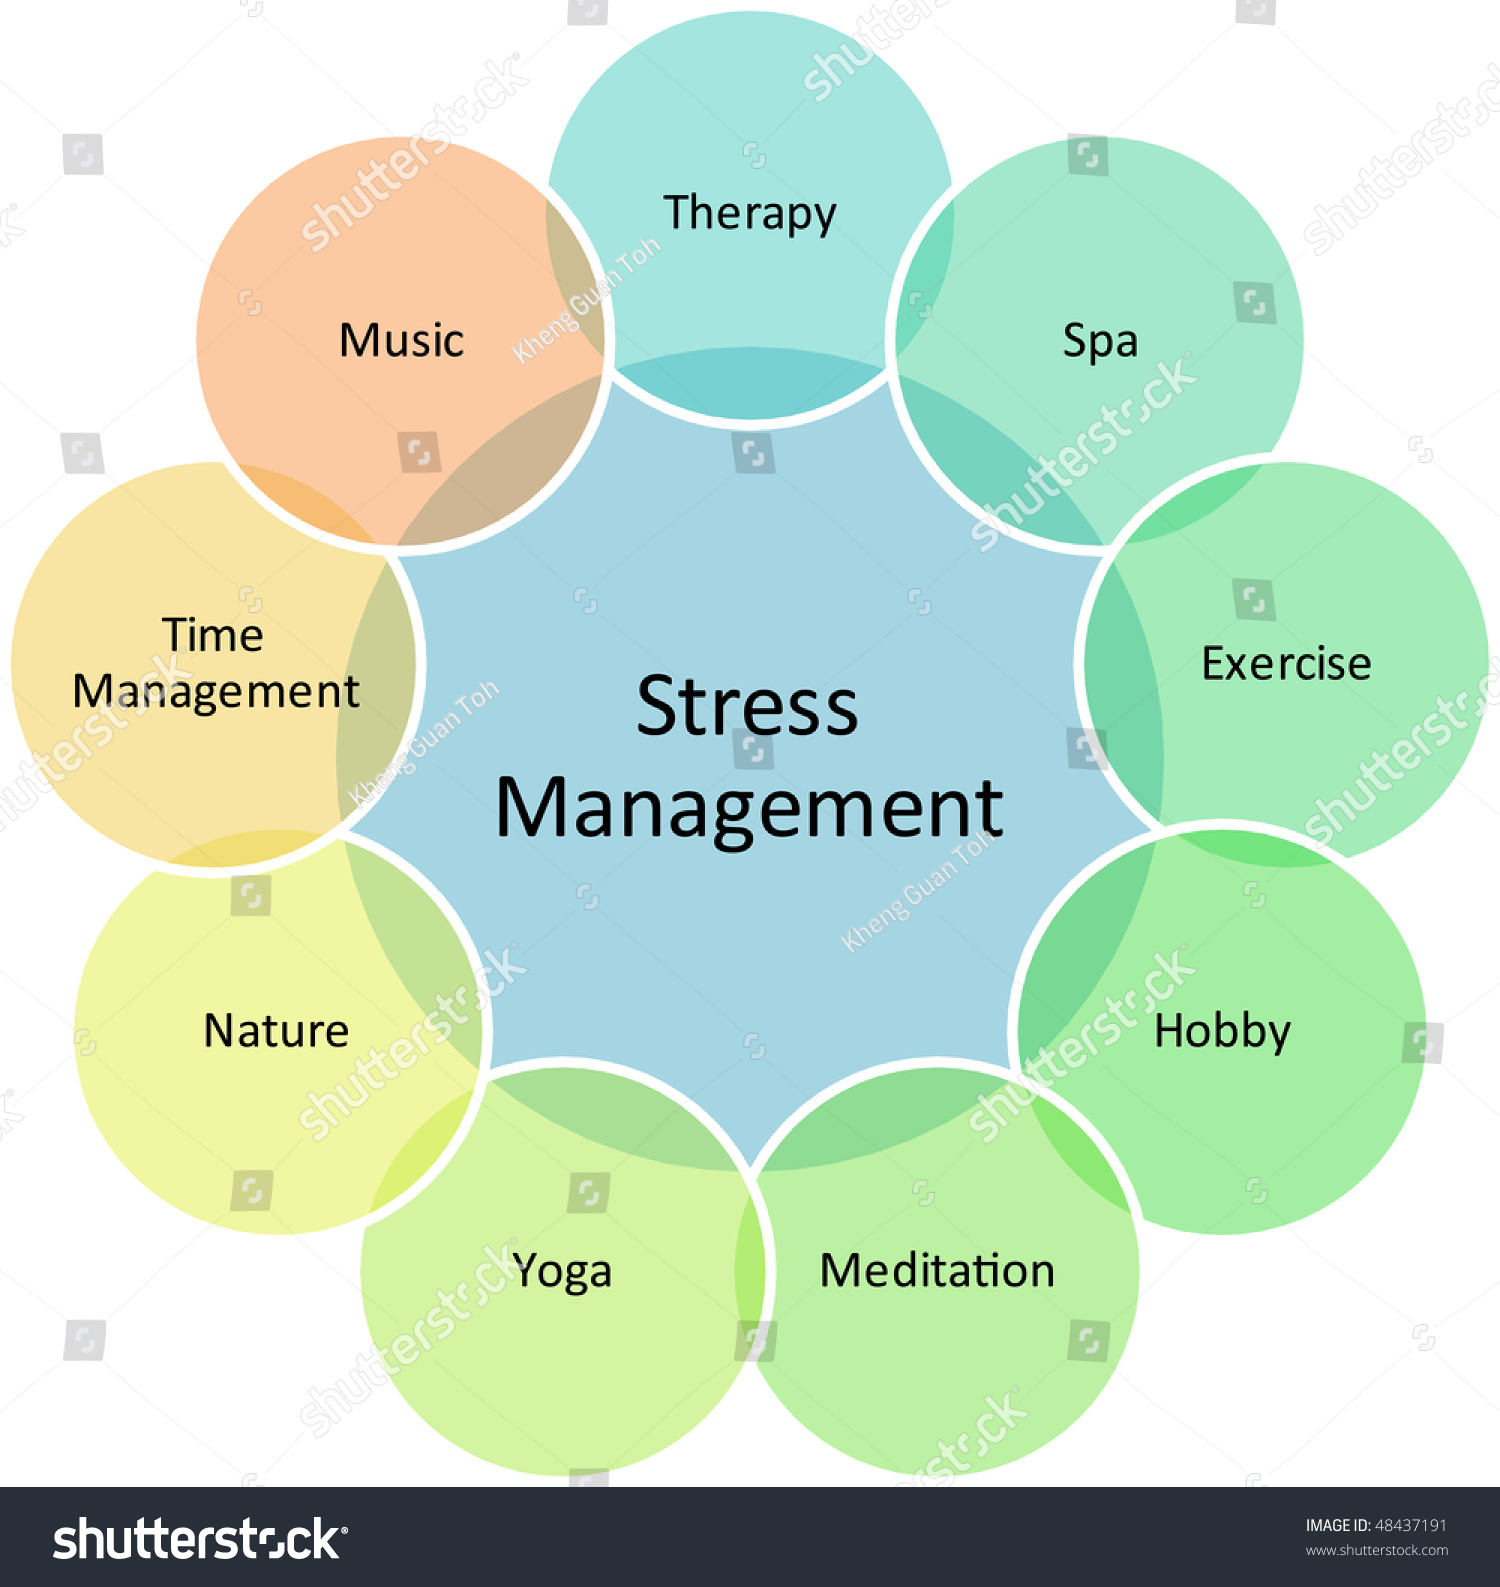 stress management research strategy Avicenna journal of dental research: september 01, 2016, 8 (3) e24347  since learning stress management strategies is required to minimize the effects of.